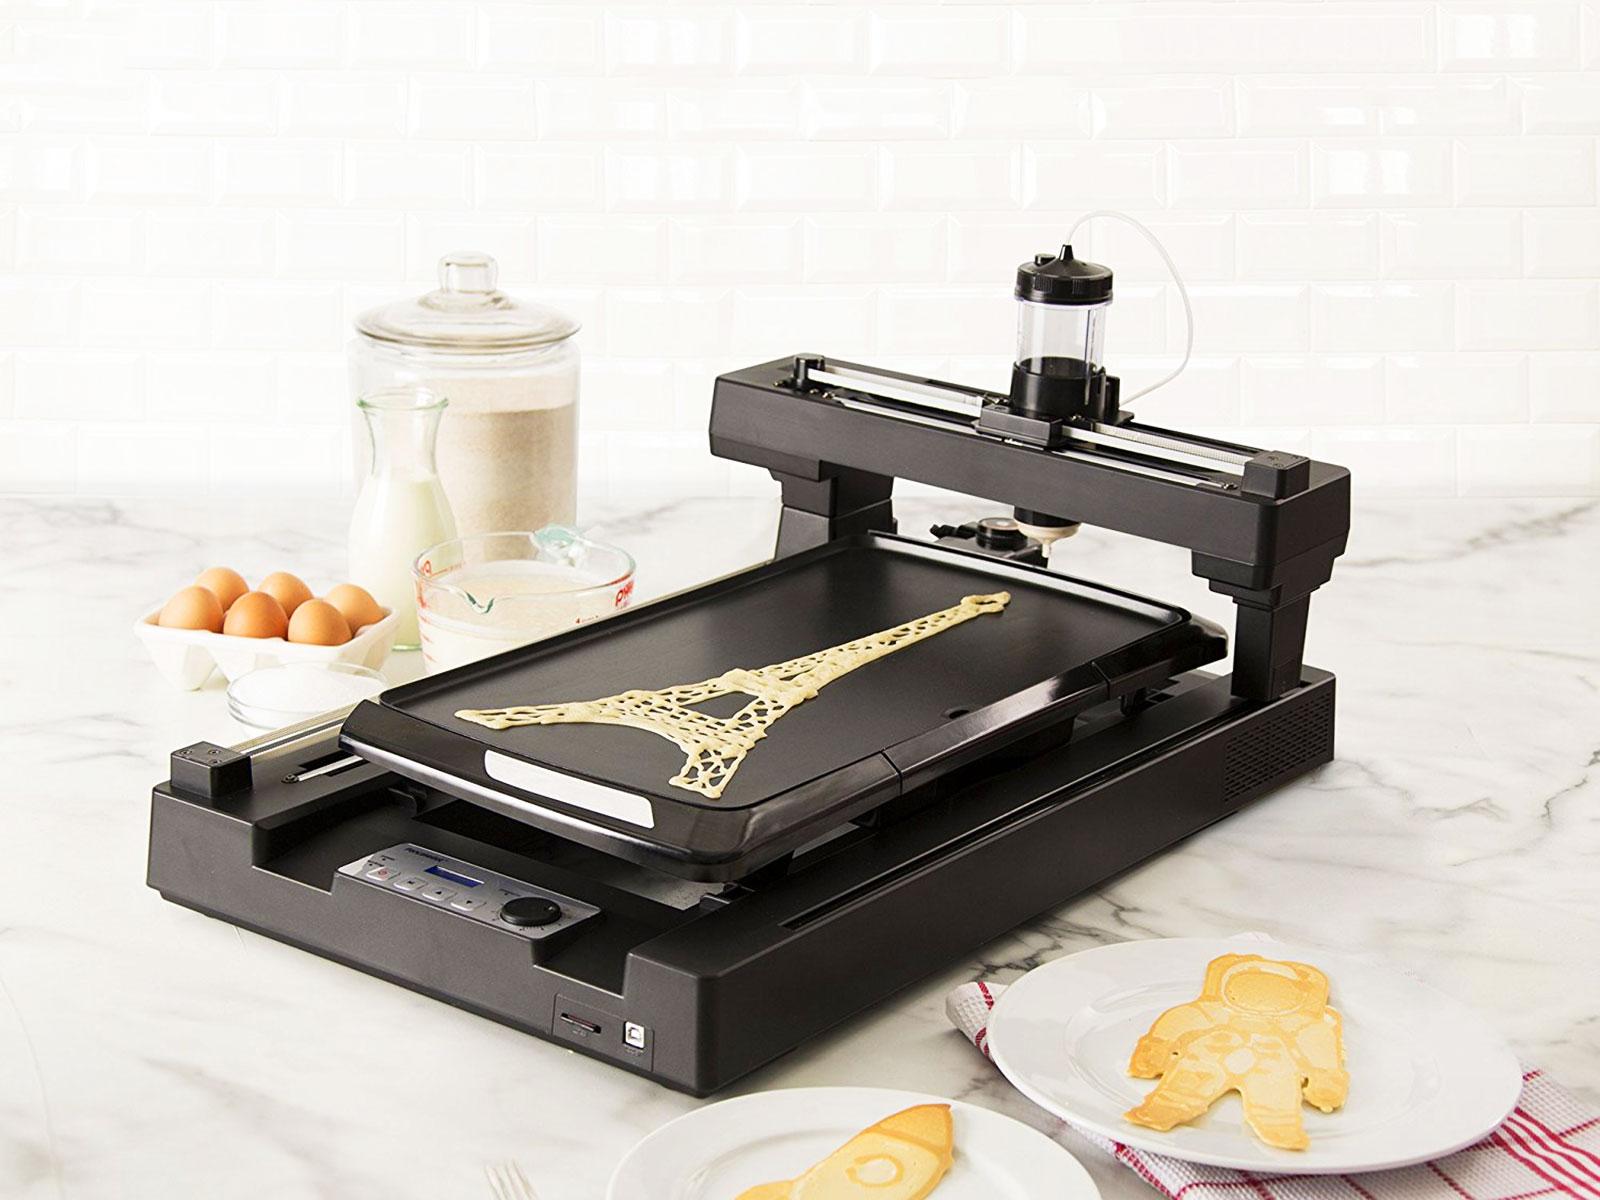 pancakebot available on amazon